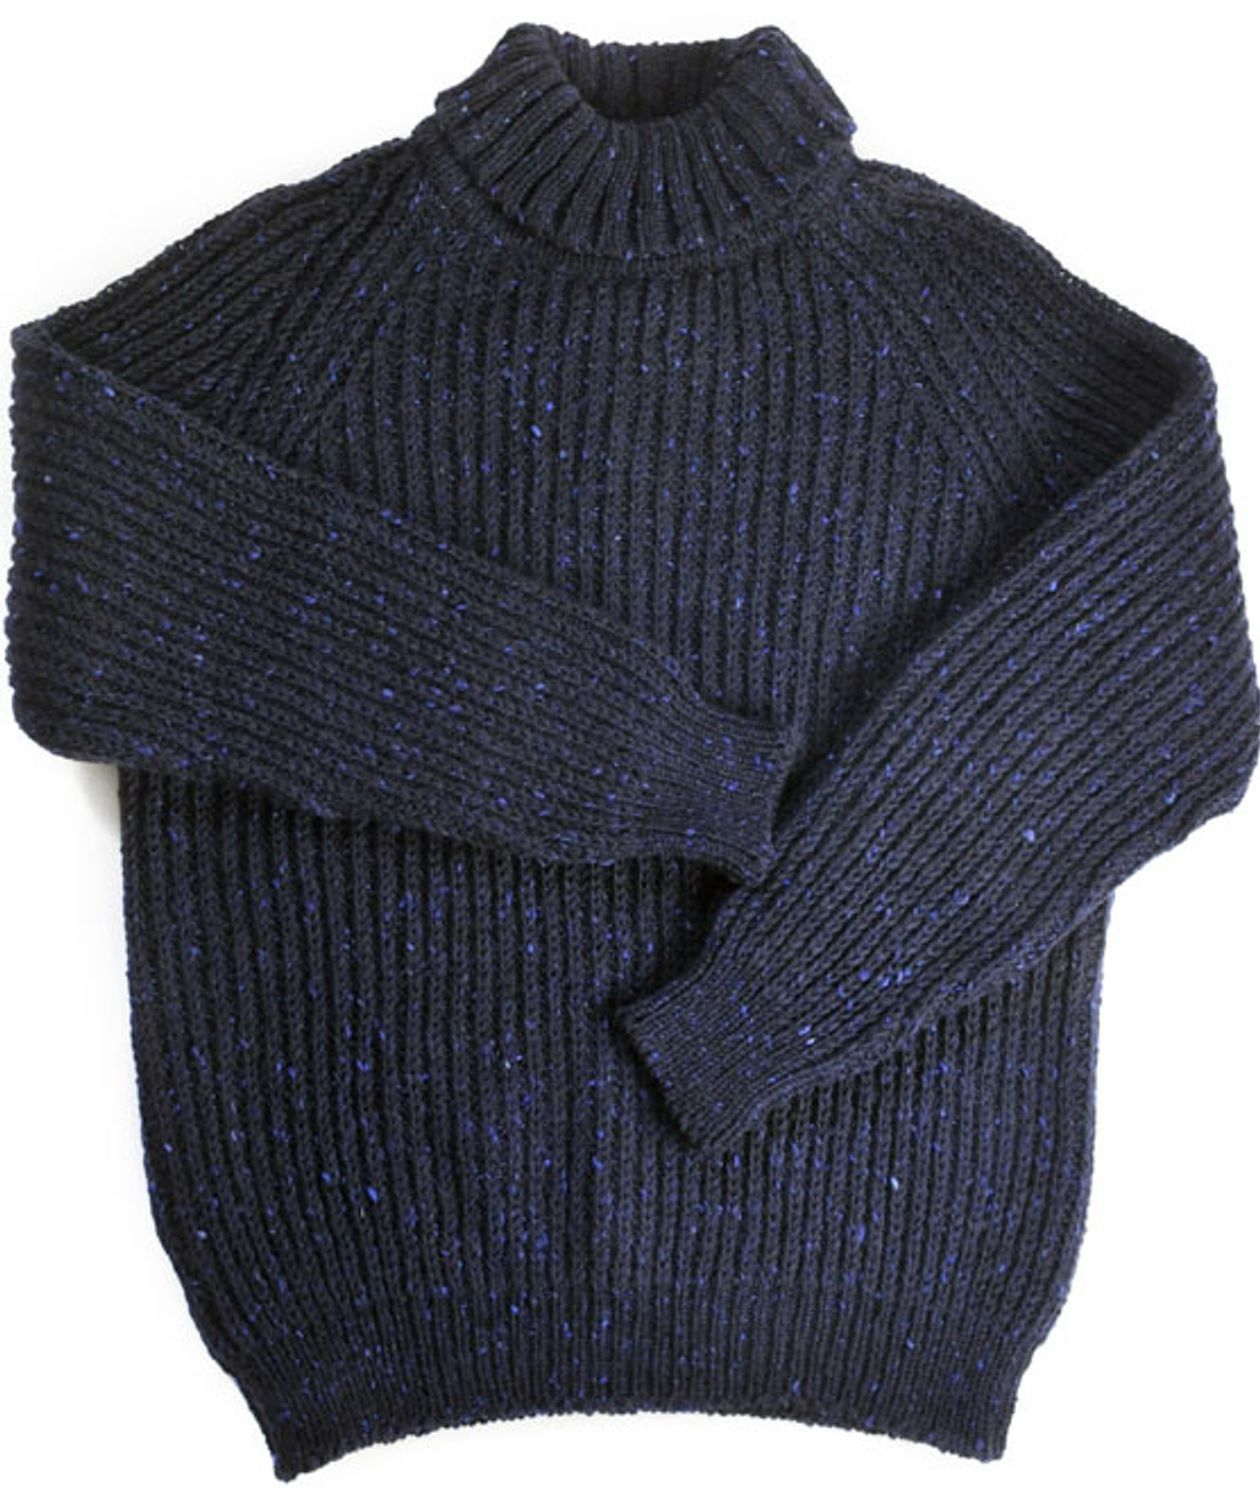 367051f54 Donegal Fisherman s Rib Polo Neck Sweater Navy